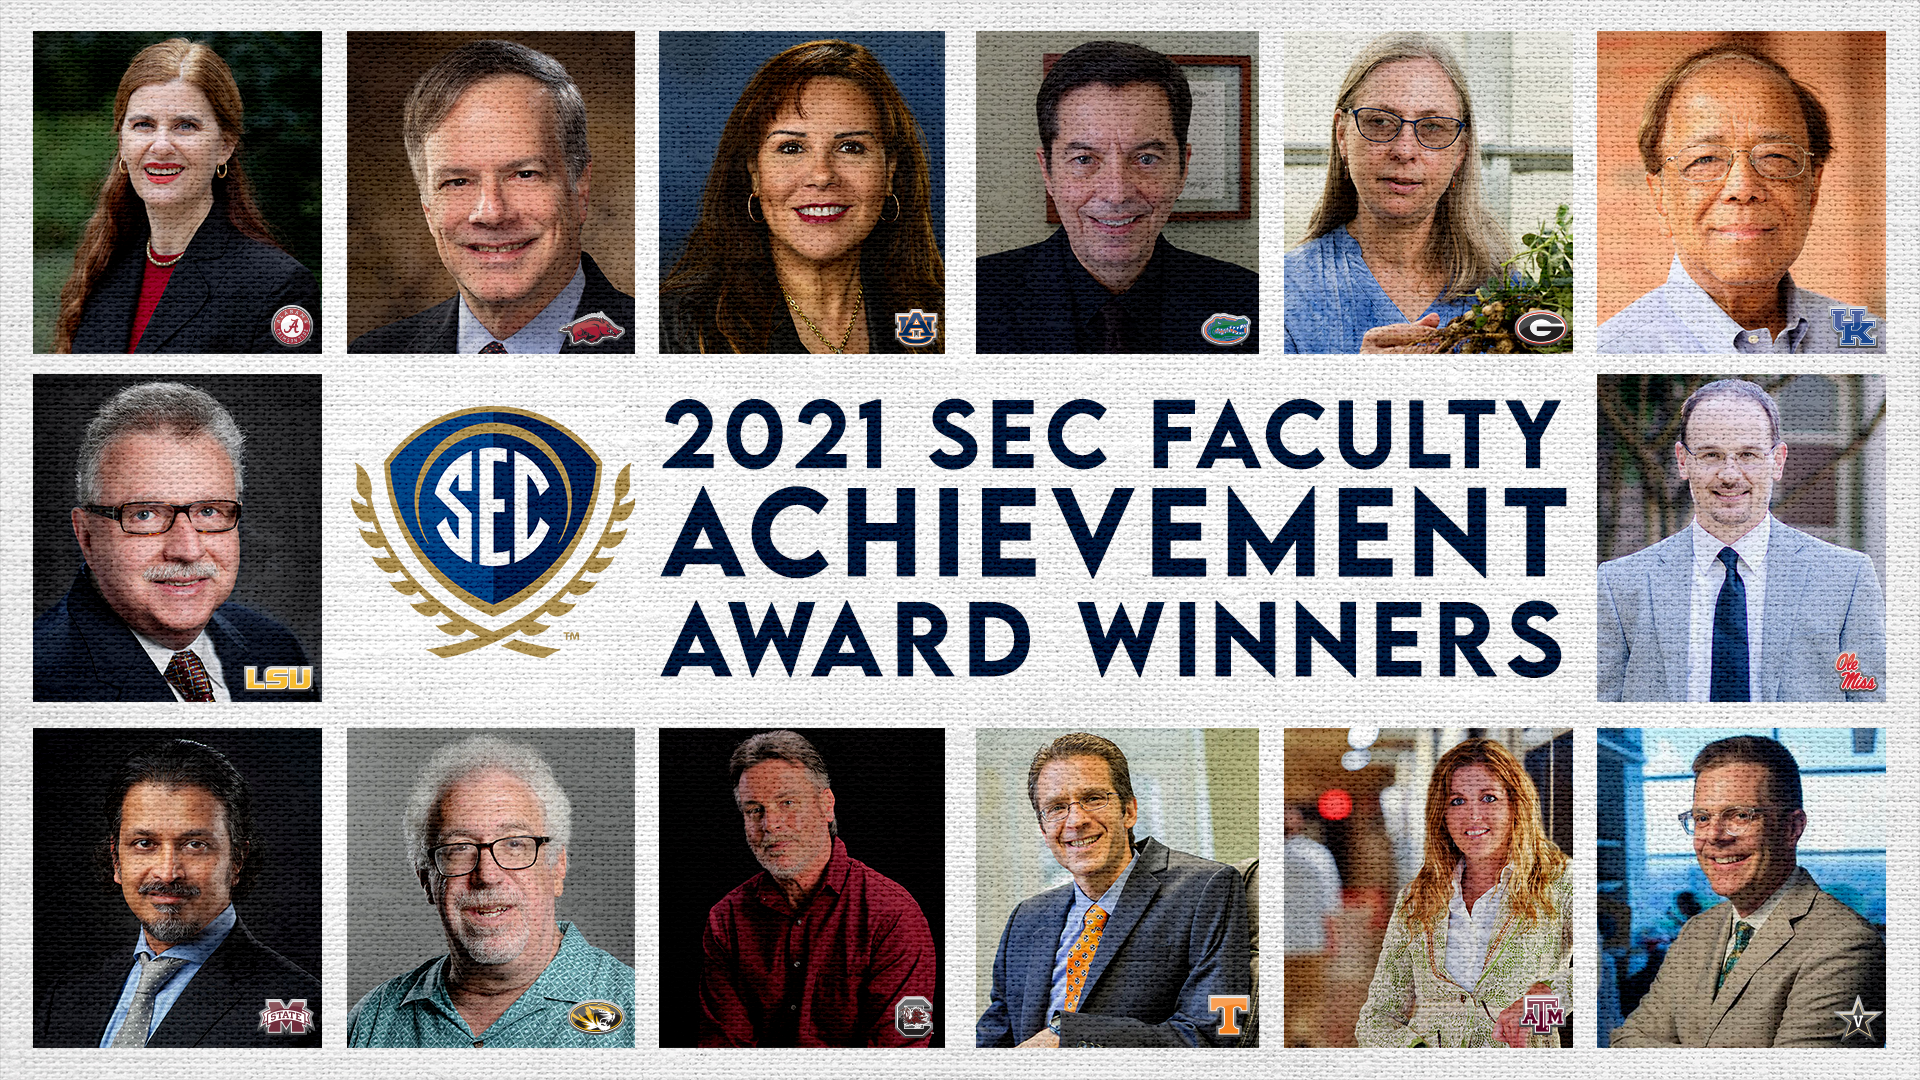 SEC Uses Athletics Platform to Celebrate, Support Conference Member Faculty